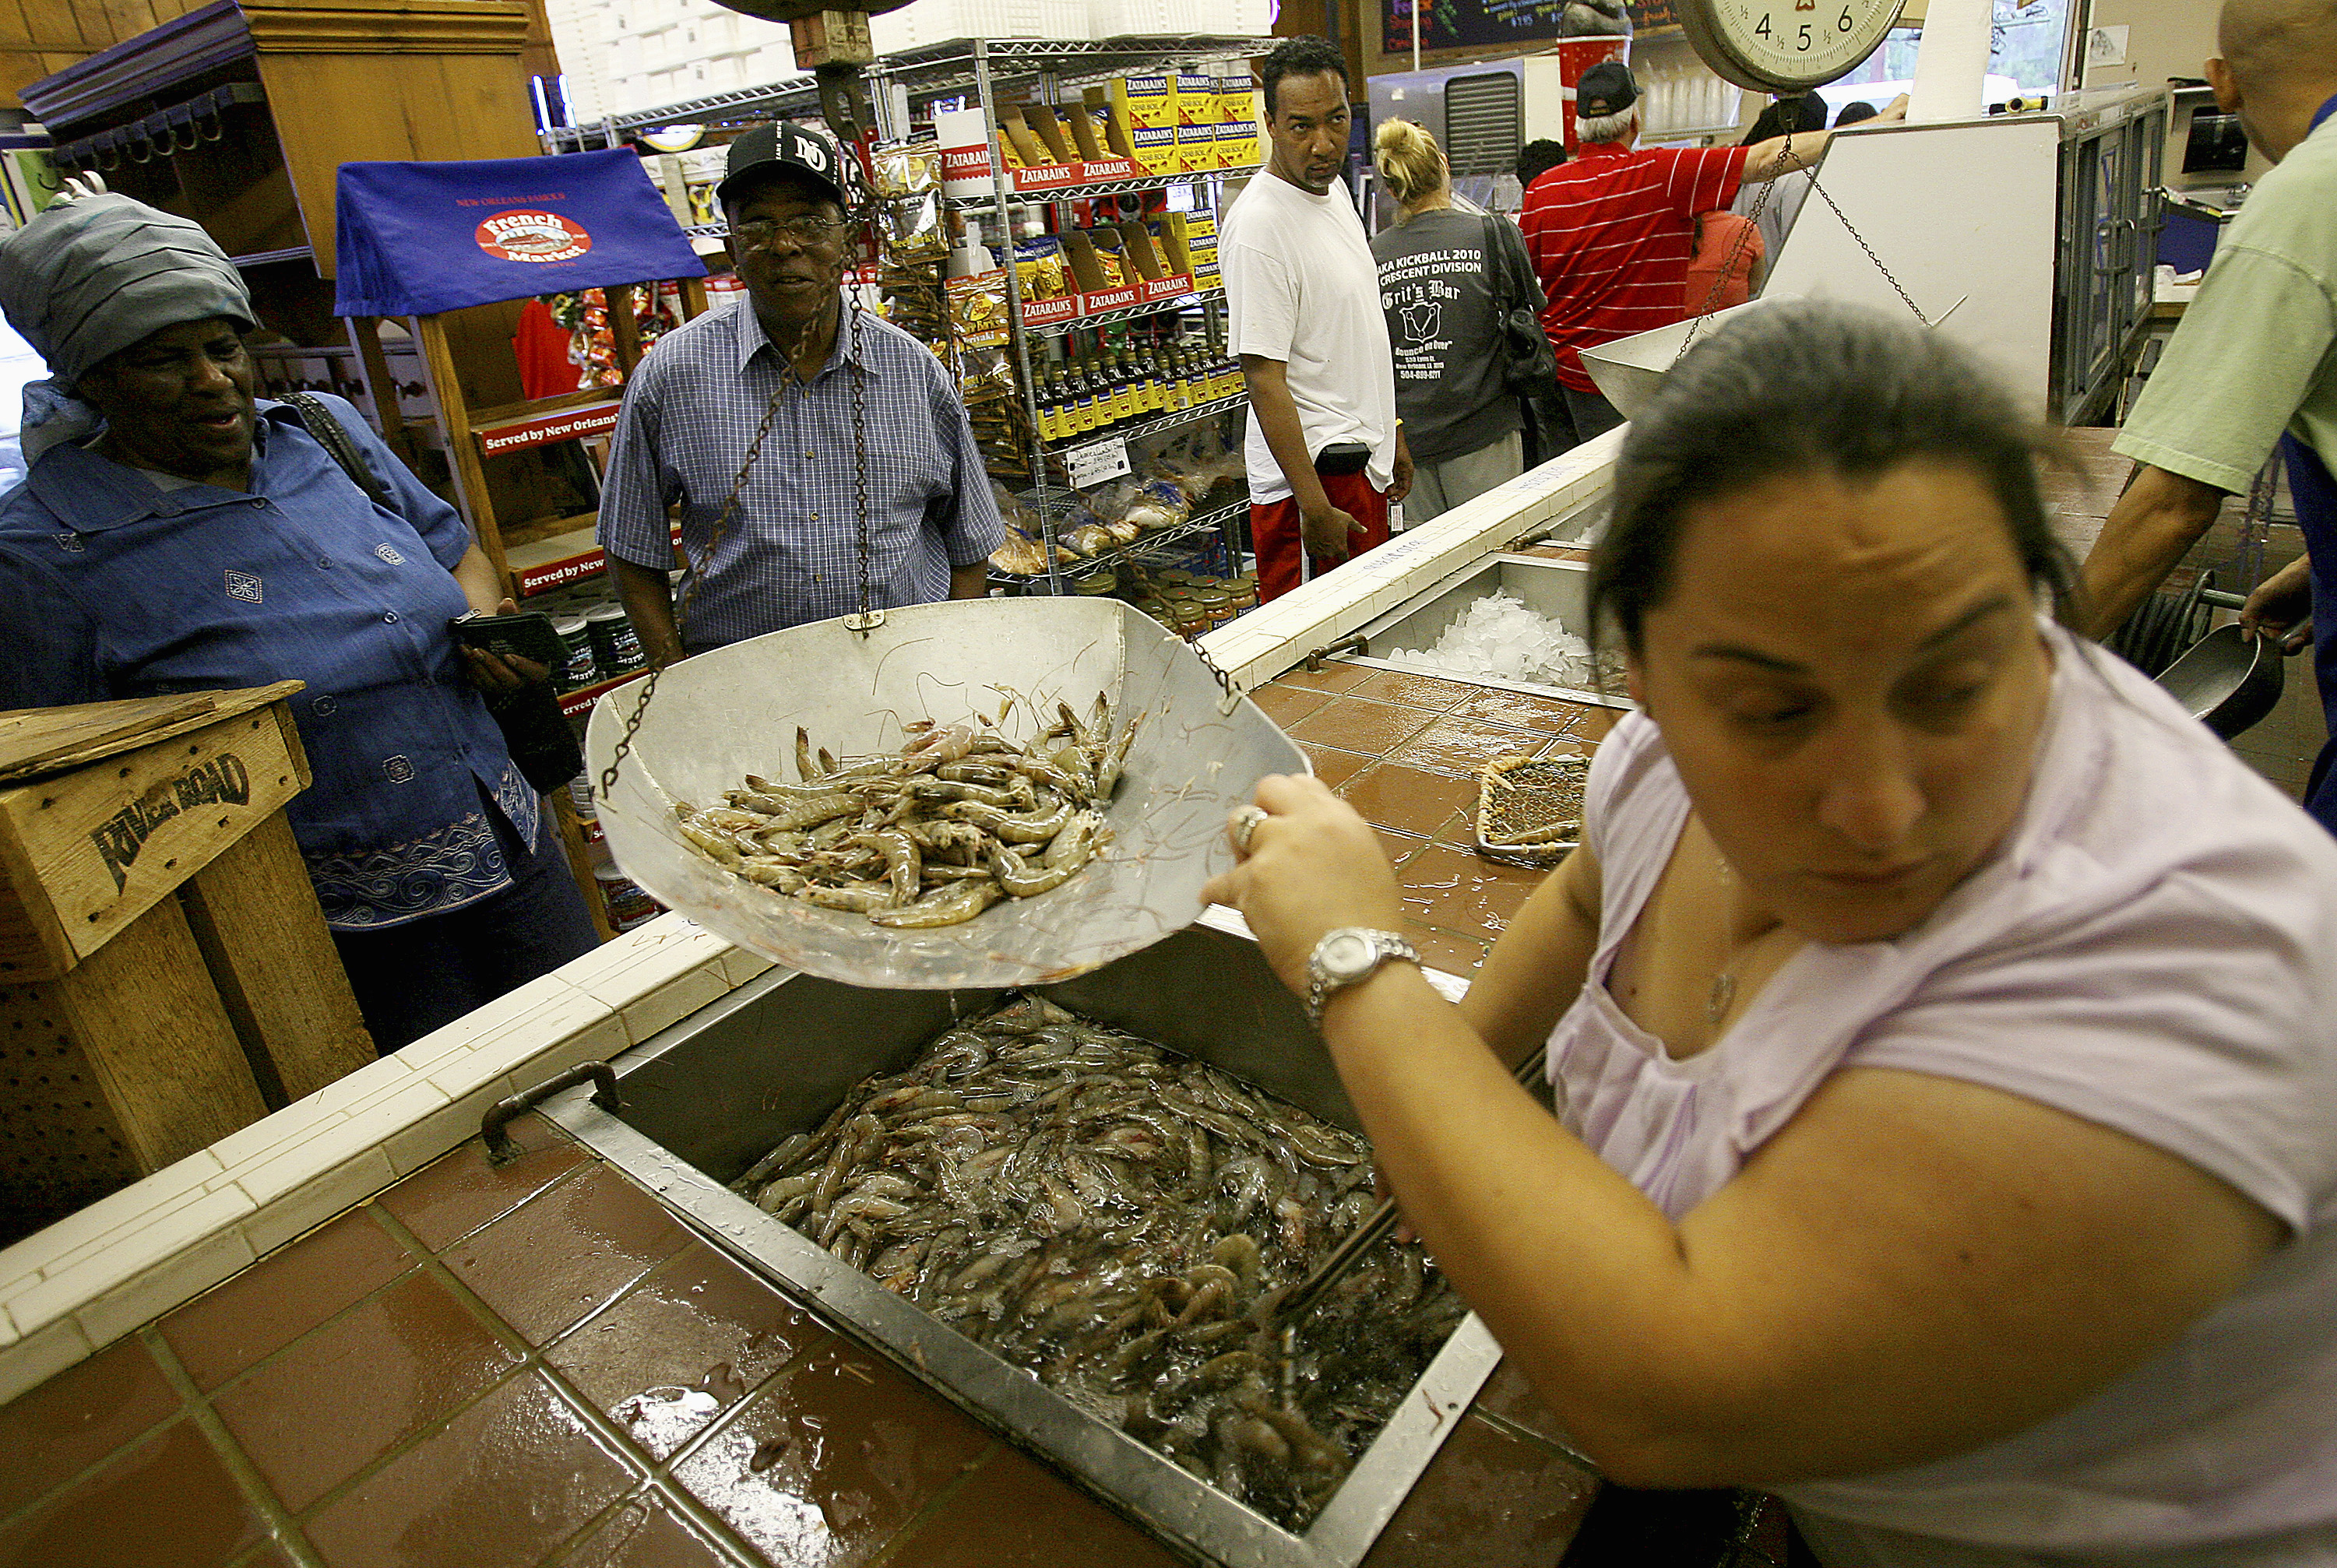 Chandra Chifici at Deanie's Seafood weighs shrimp for customers in Metairie, Louisiana, in 2010.